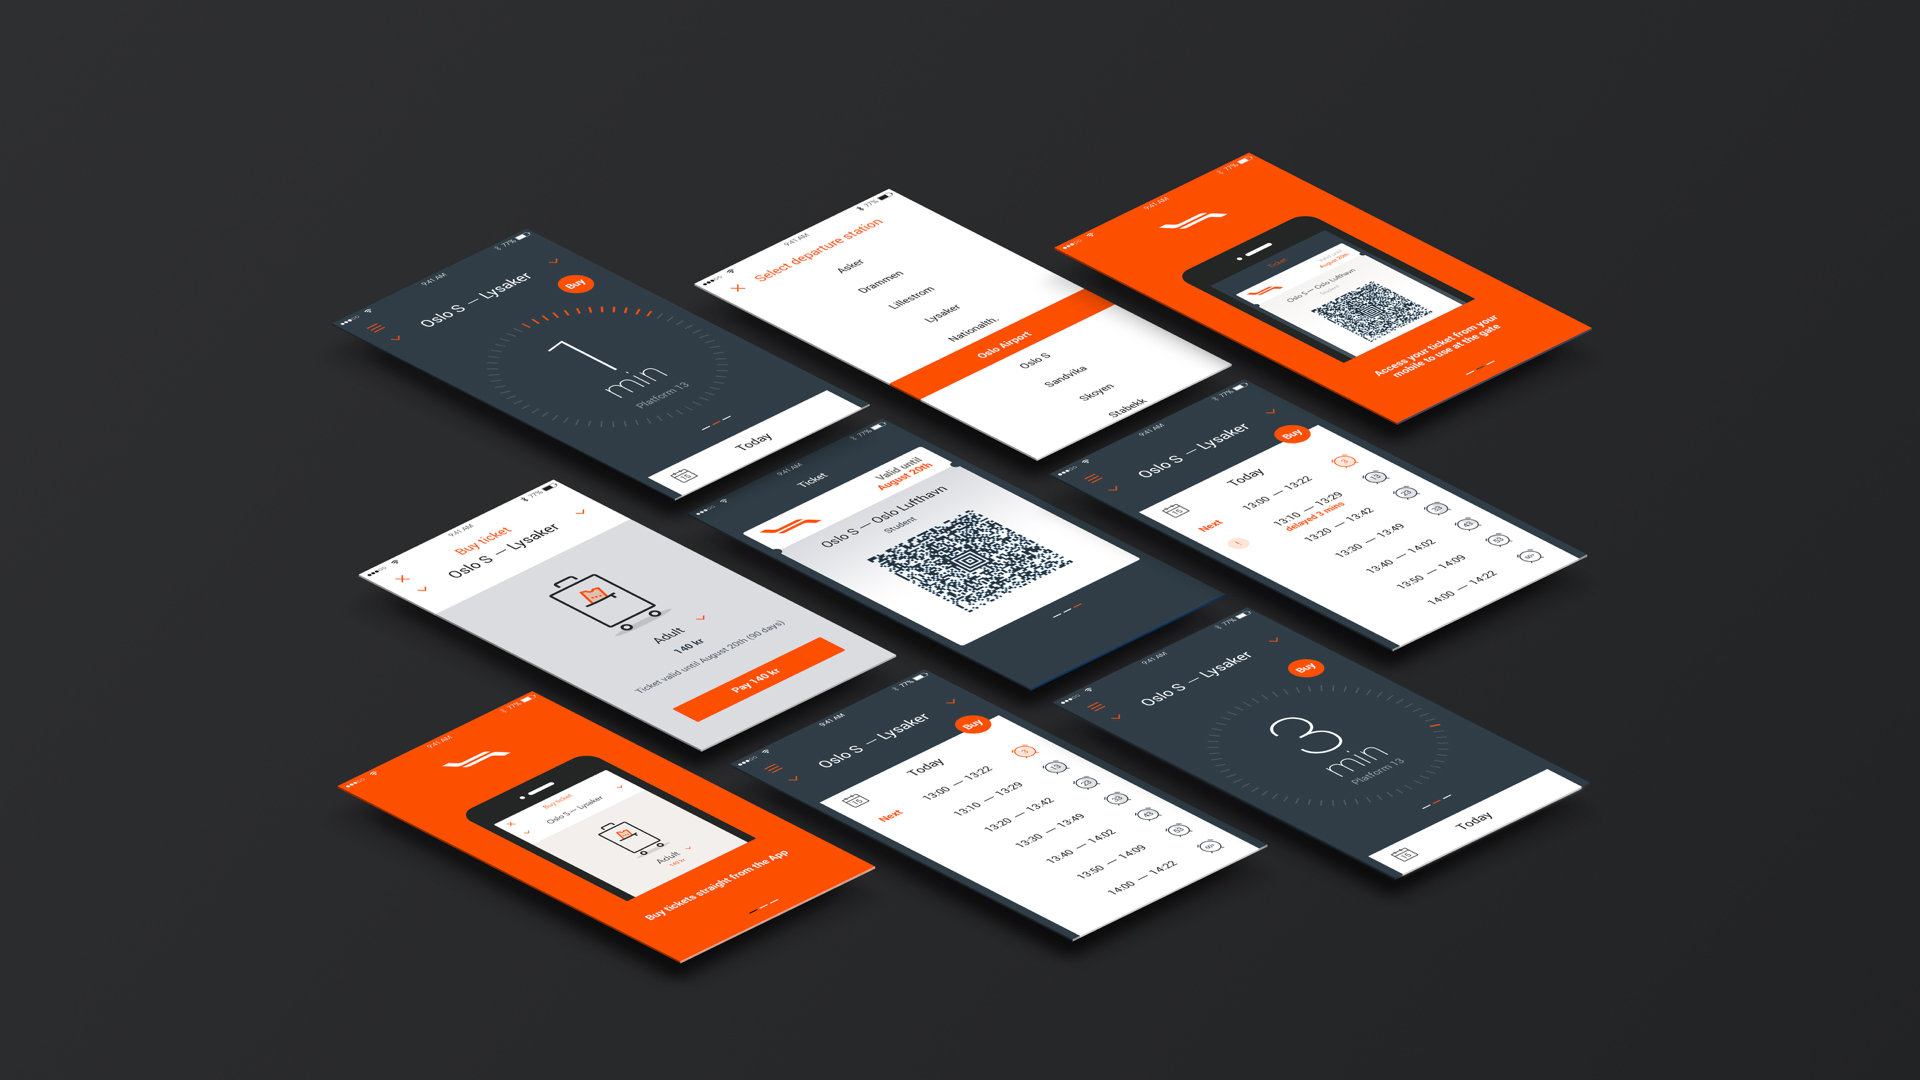 app-design-digital-guidelines.jpg